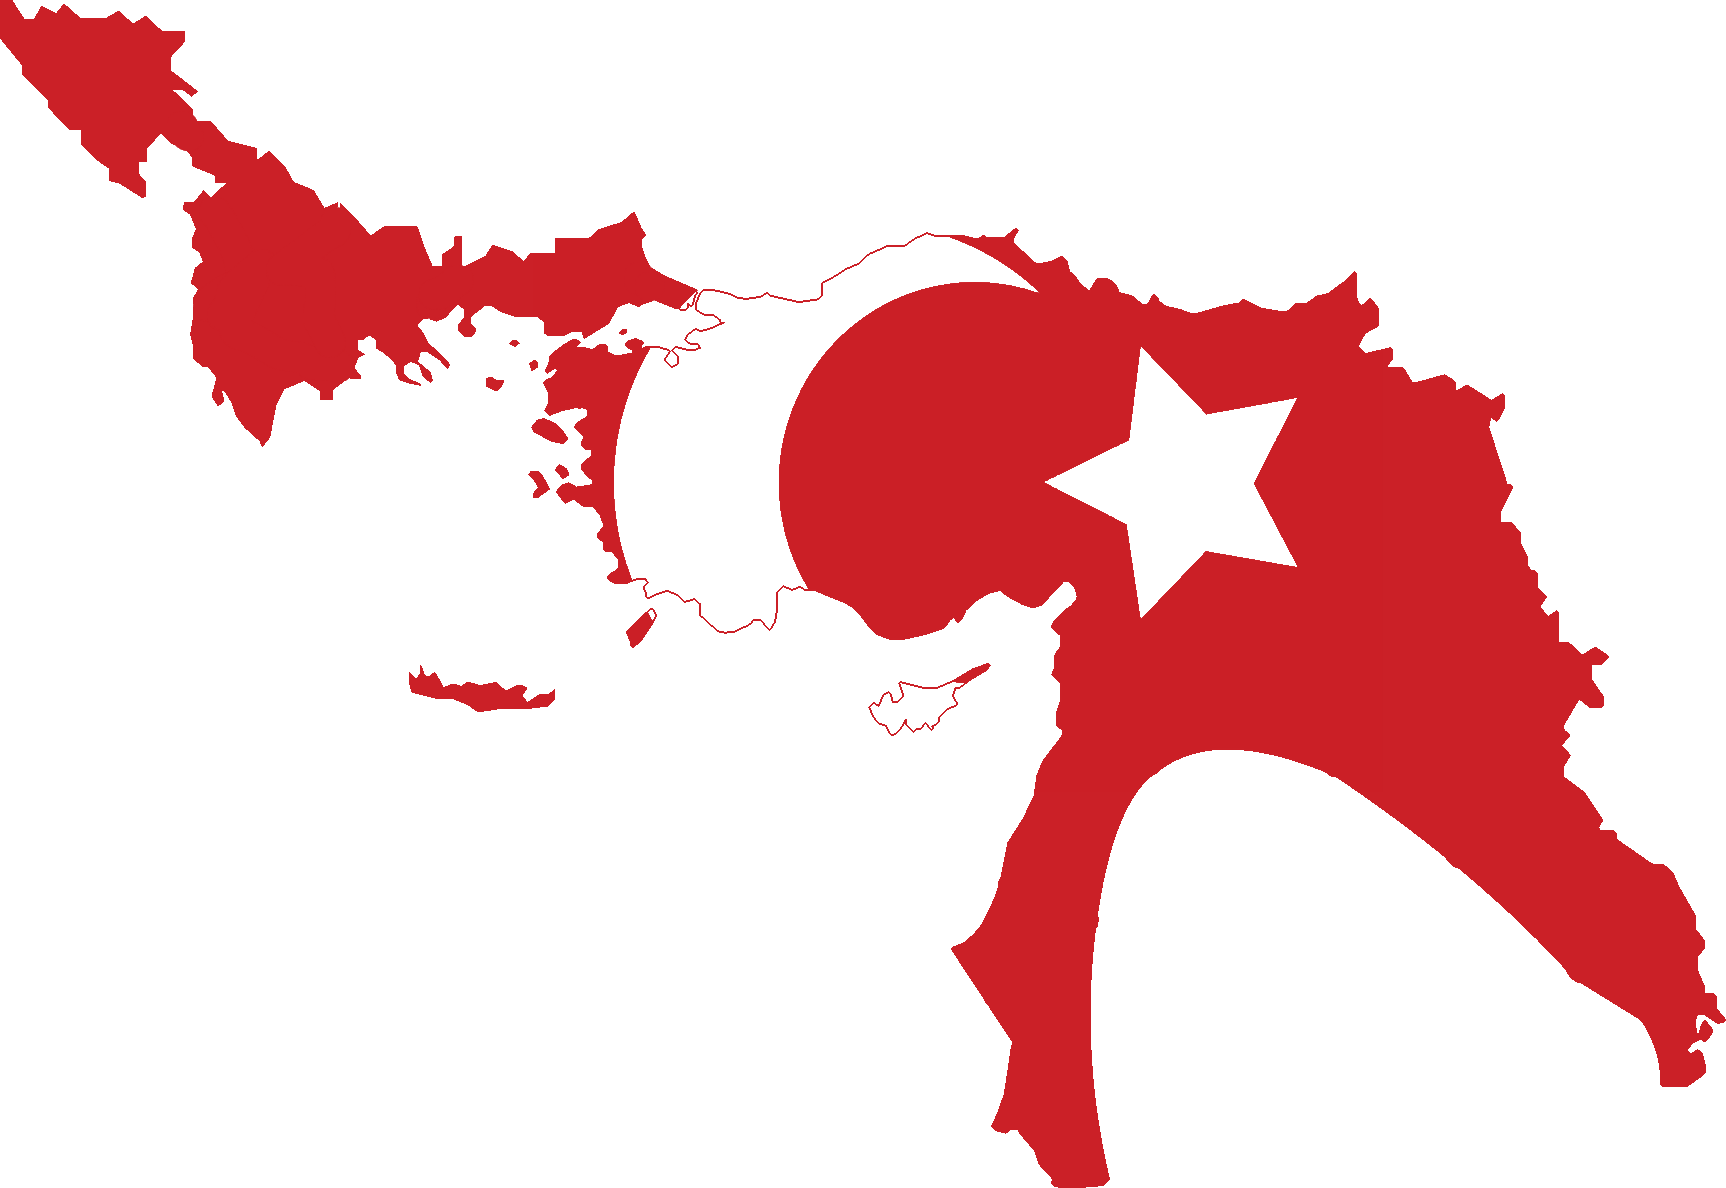 Japanese Art Wallpaper Hd File Flag Map Of Ottoman Empire 1900 Png Wikimedia Commons